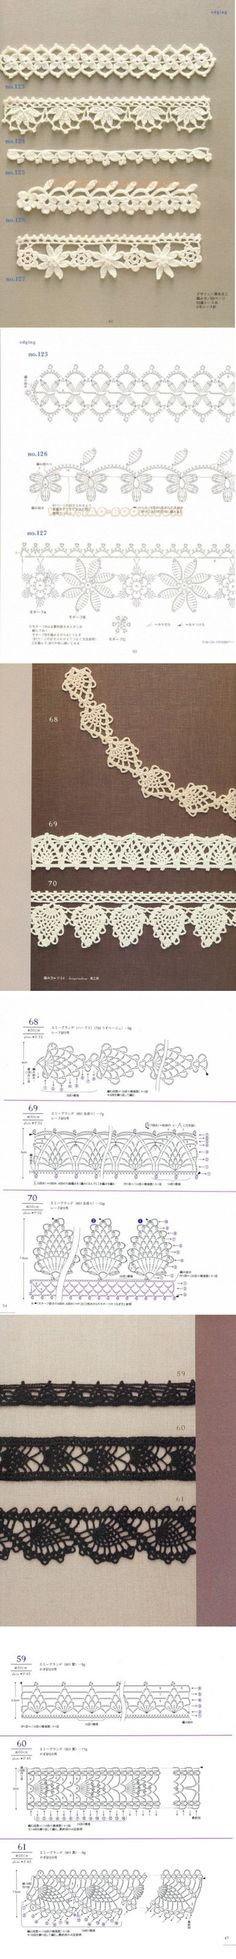 such delicate crochet edgings!